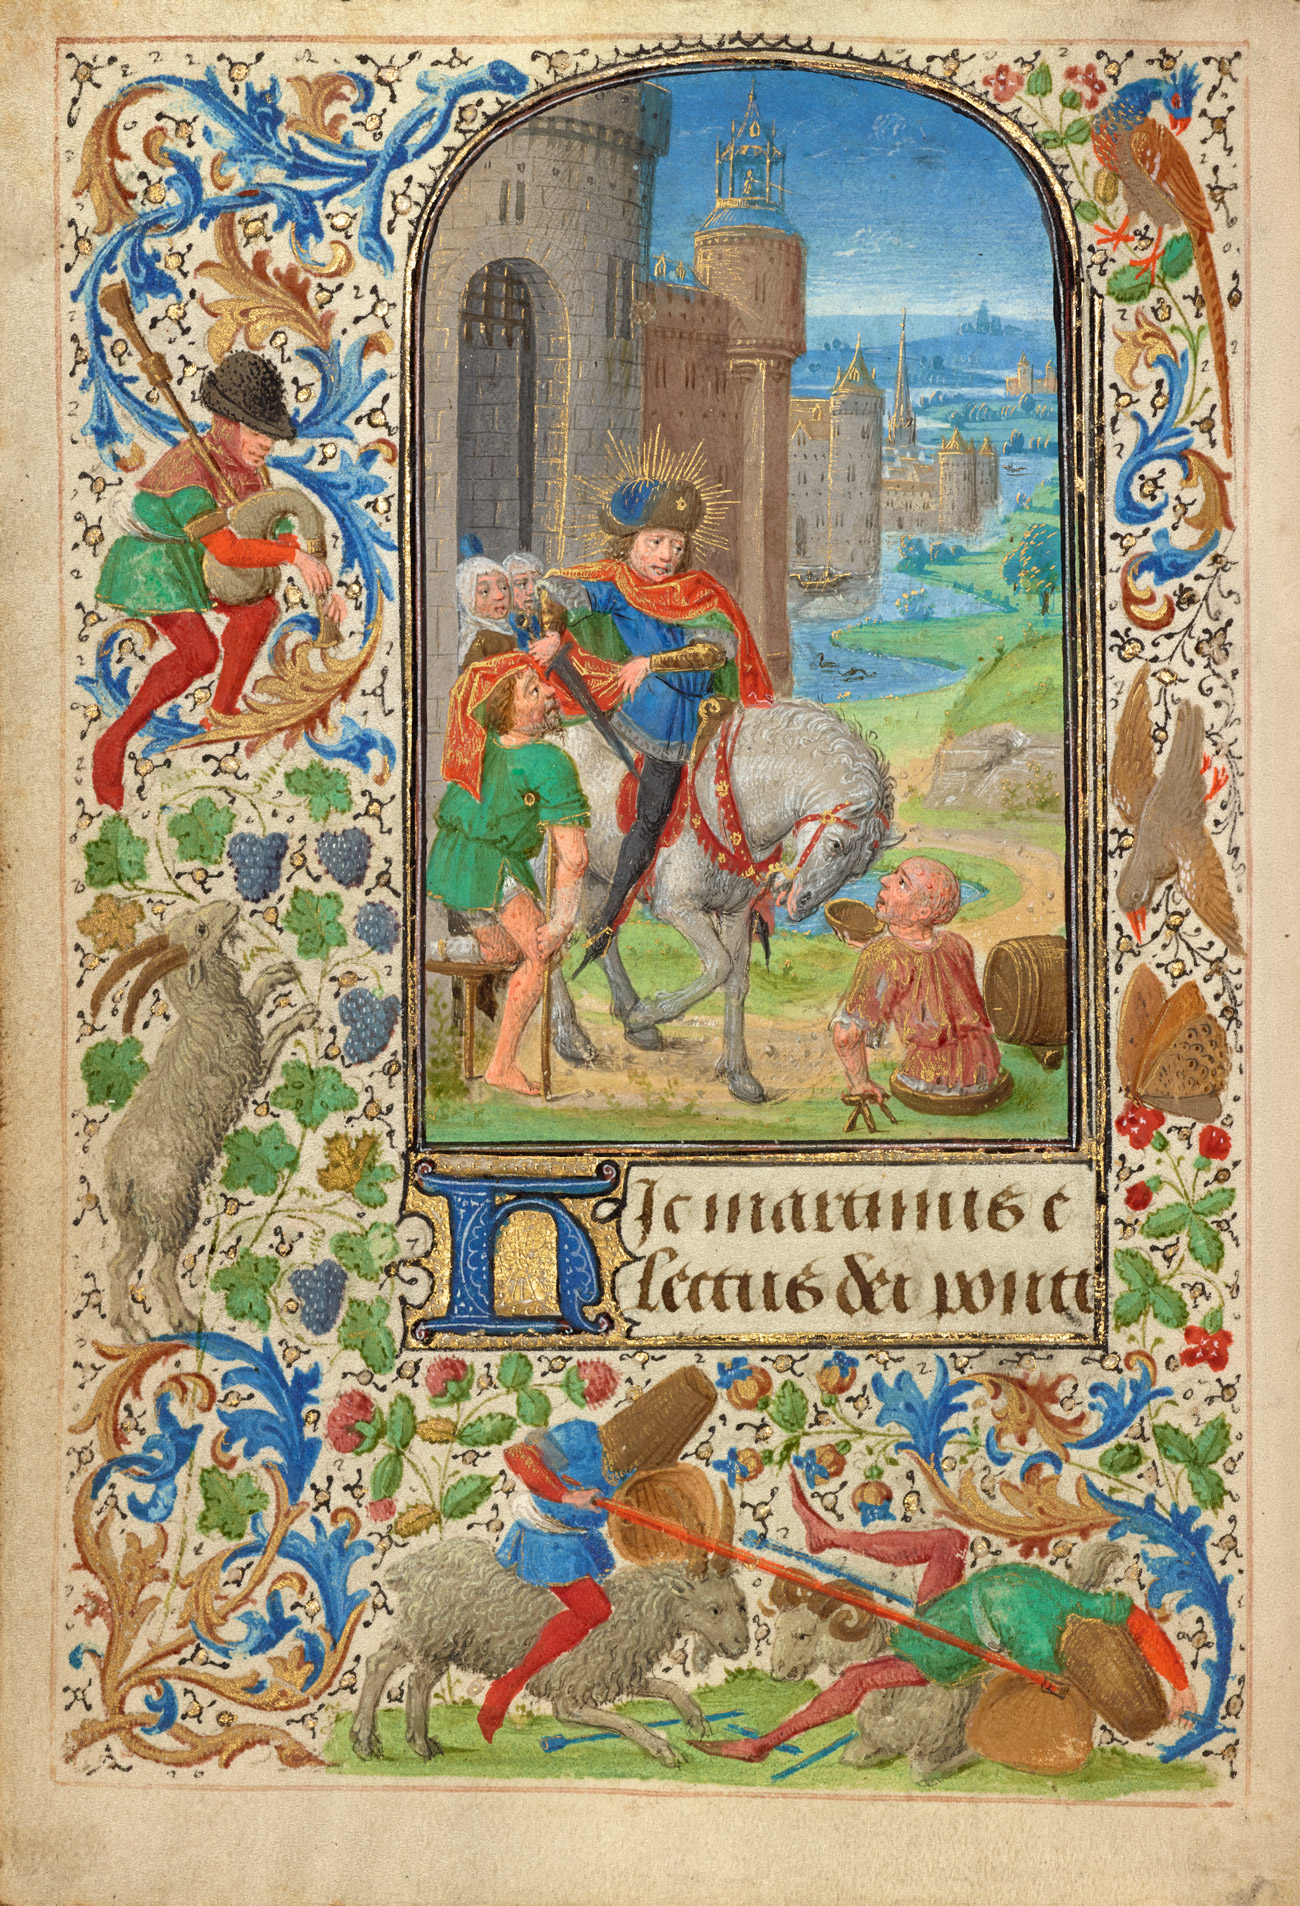 A lushly illustrated page of an illuminated manuscript. In the center a man on a horse with a sword and gold rays around his head is surrounded by beggars with bandages, red spots, and missing limbs.